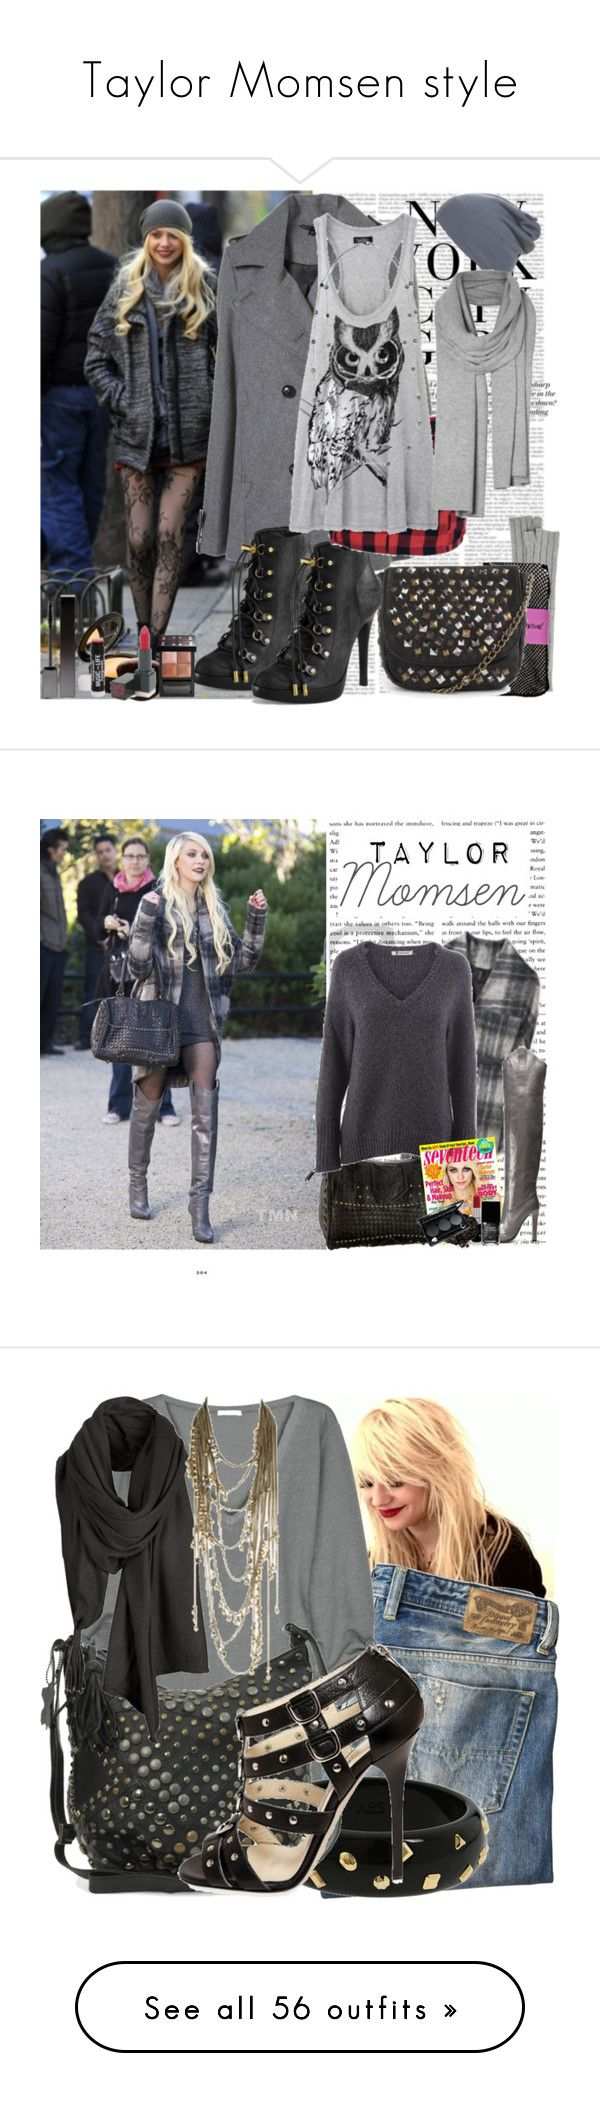 """Taylor Momsen style"" by childofdecember ❤ liked on Polyvore featuring H&M, Michael Kors, Betsey Johnson, Melie Bianco, Tory Burch, Serge Lutens, ULTA, Givenchy, EMILY THE STRANGE and LAUREN MOSHI"